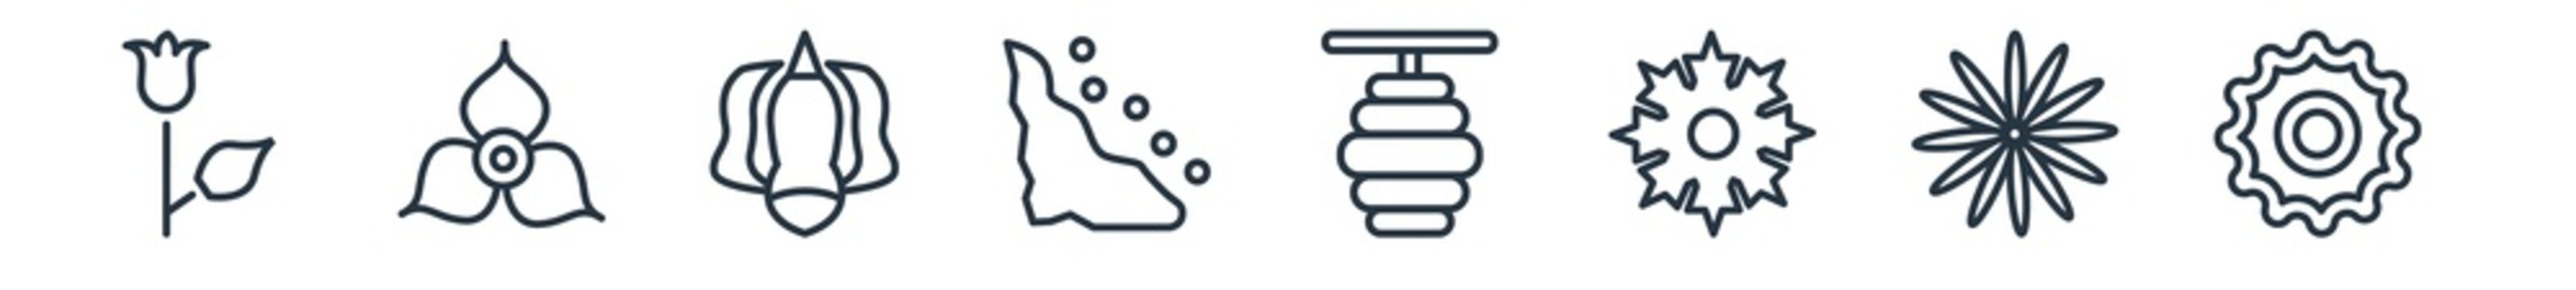 linear set of nature outline icons. line vector icons such as bell, bougainvillea, ylang-ylang, cliff, hive, bergamot vector illustration.